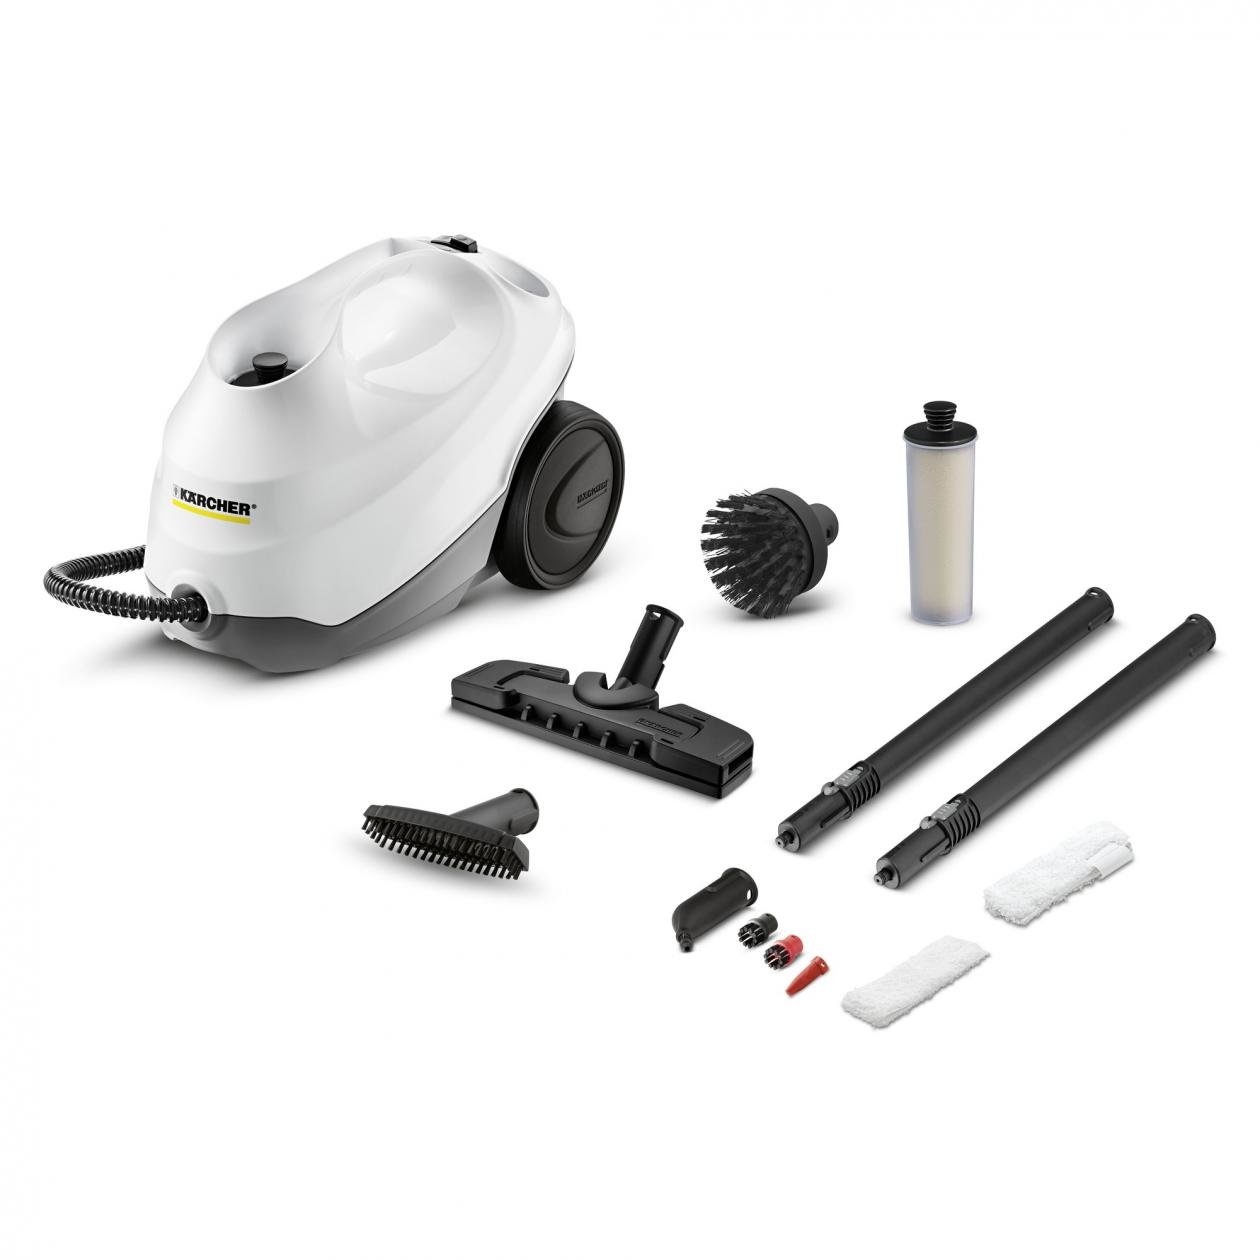 SéRieux Kärcher 1.513-050.0 Sc 3 Premium Cylinder Steam Cleaner 1 L Black,white 1900 W Chaud Et Coupe-Vent